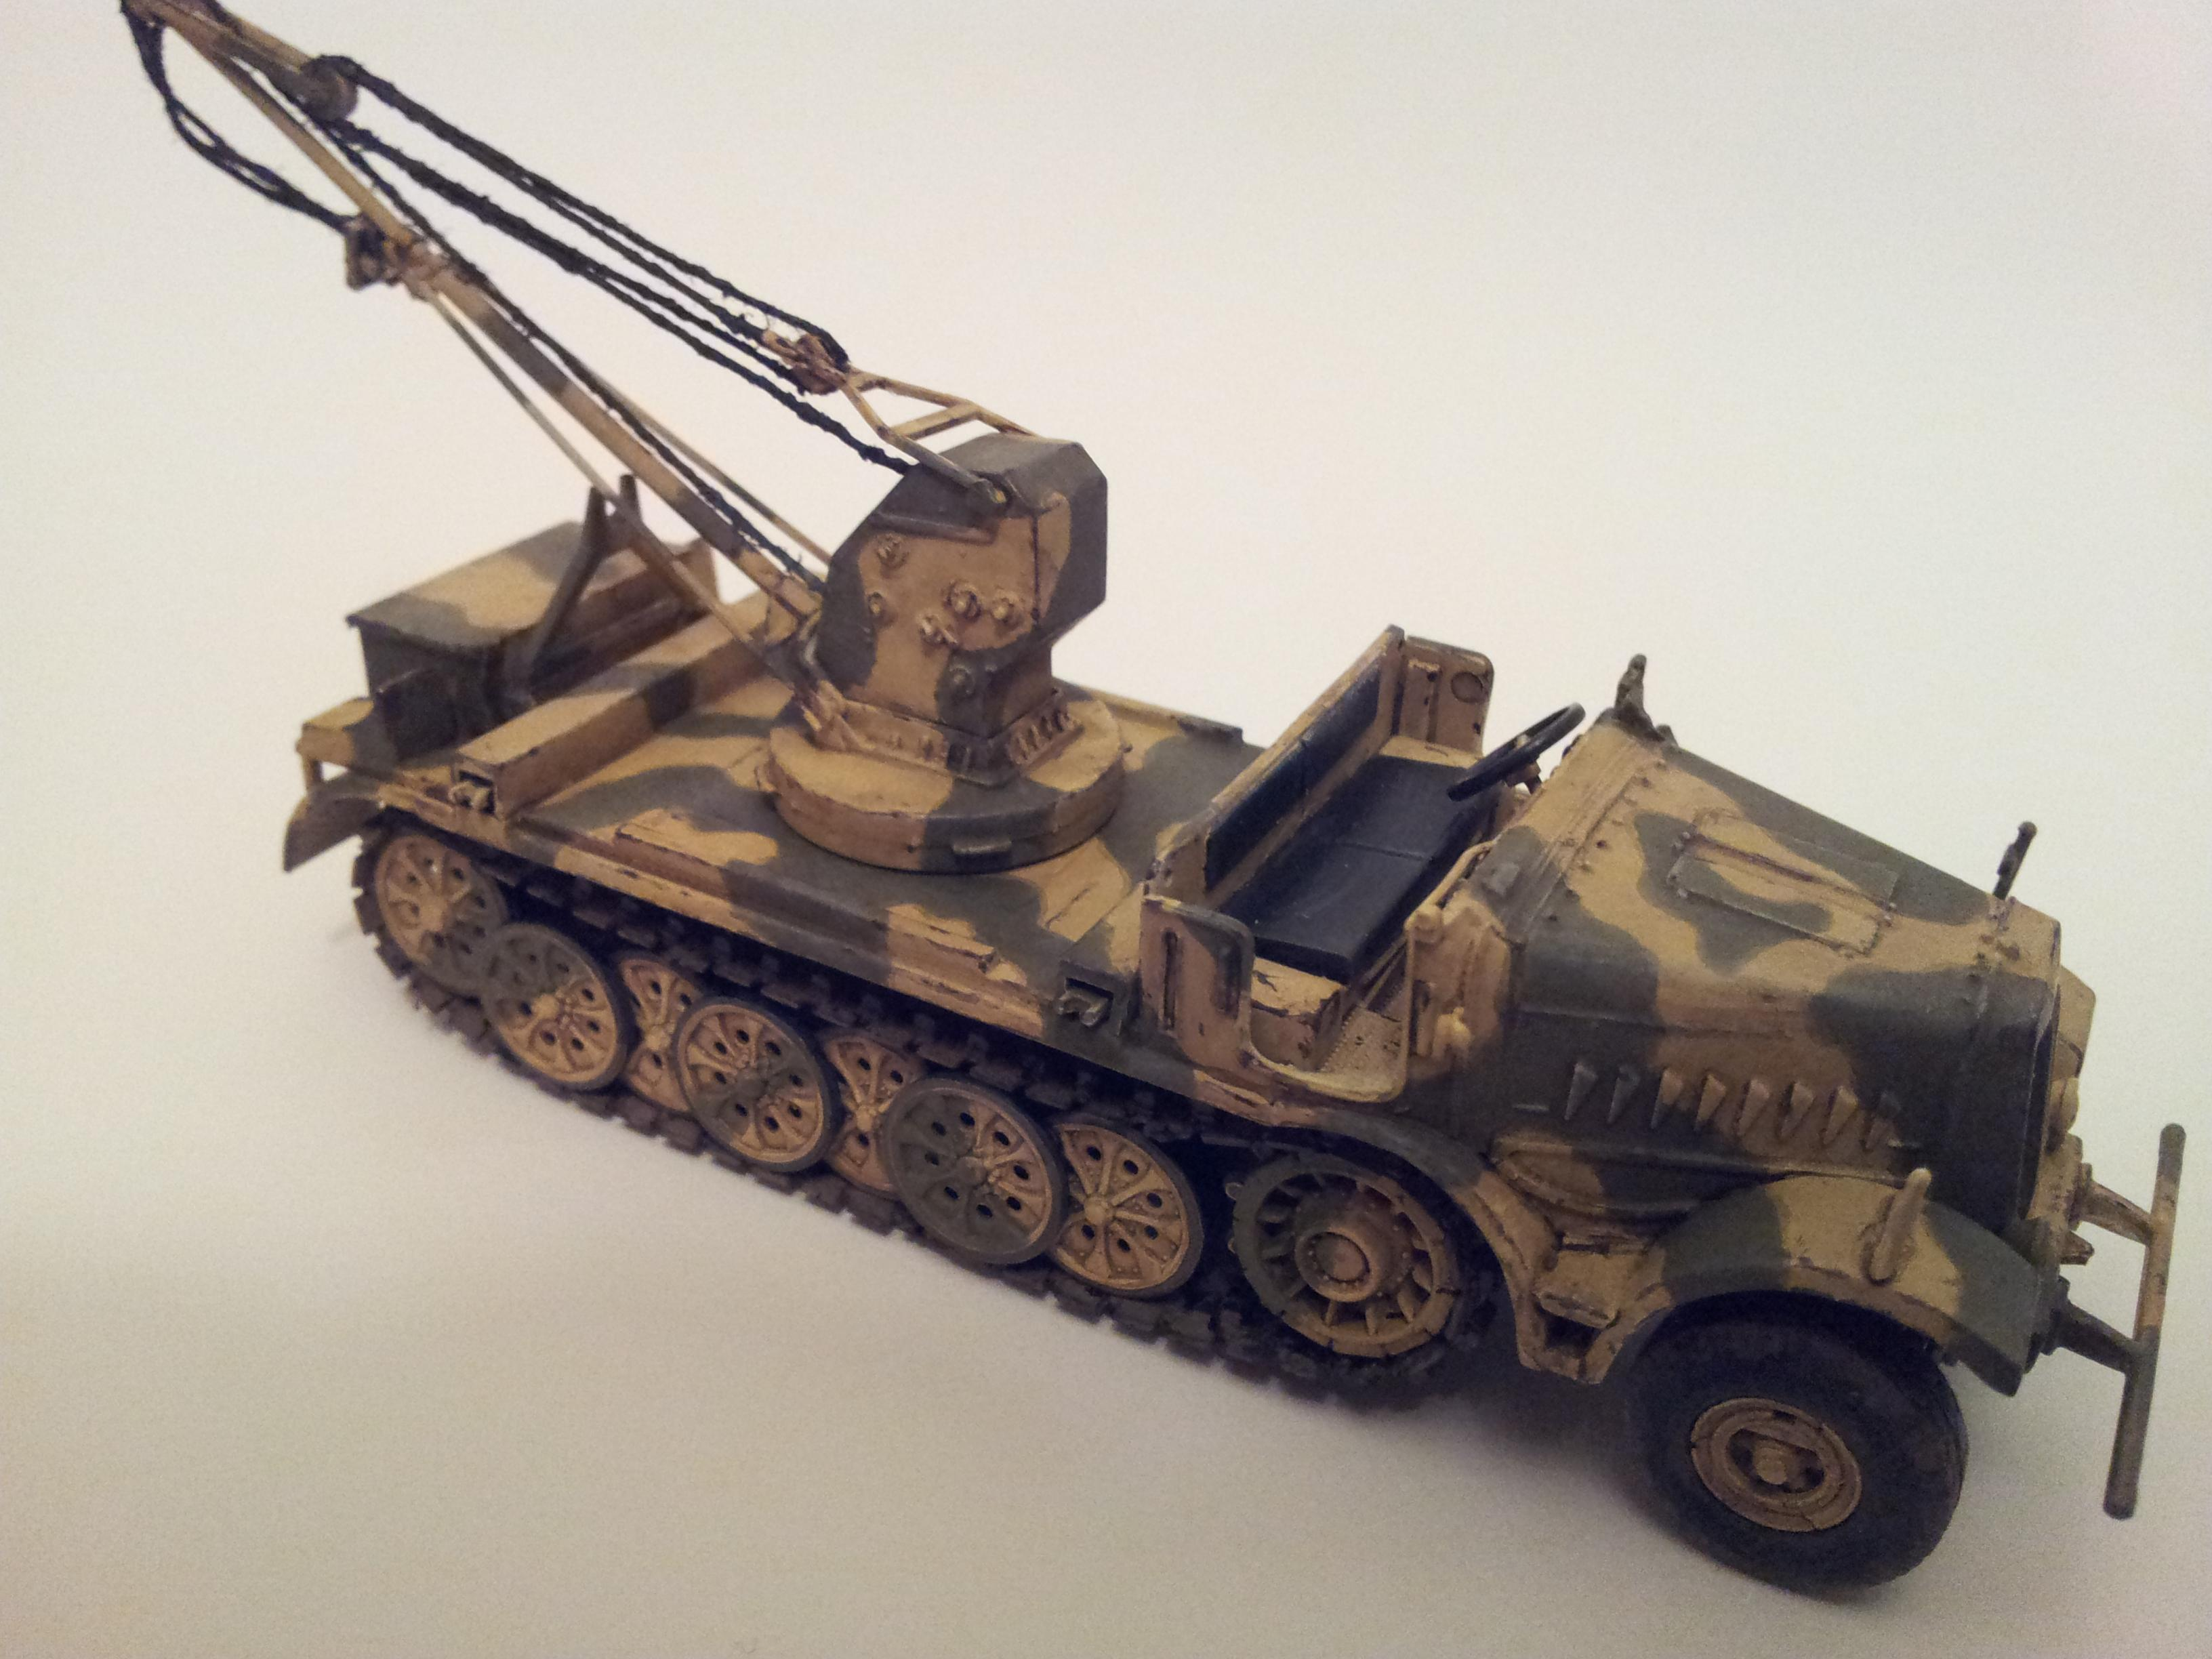 1/72, Famo' Sdkfz 9, Germans, Recovery Vehicle, World War 2